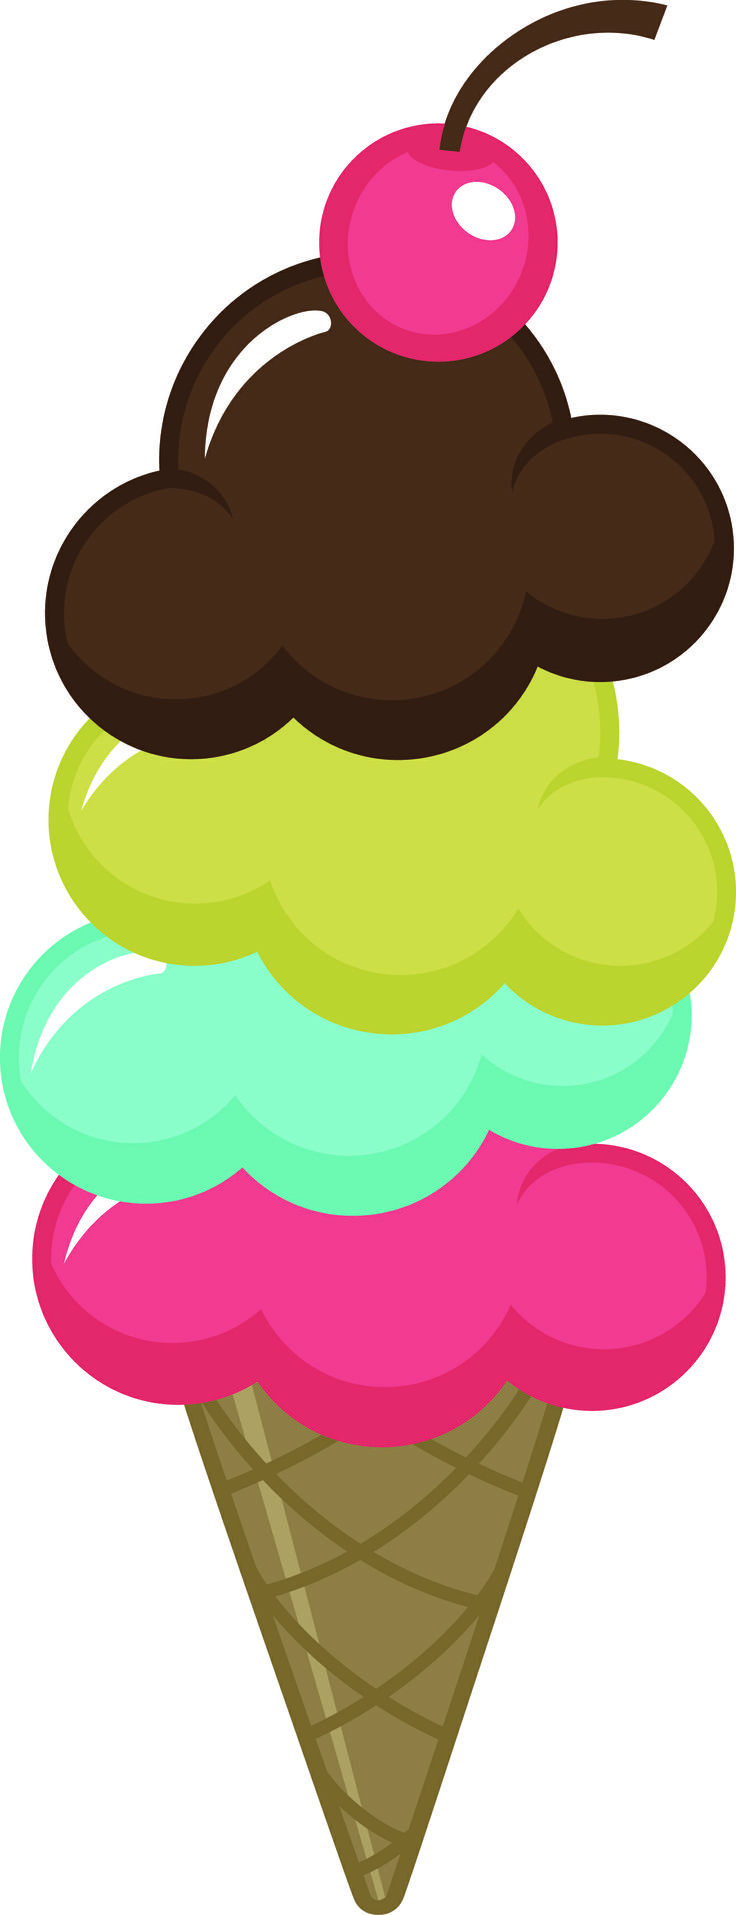 736x1915 Ice Cream Free Ice Cream Clip Art Ice Images 4